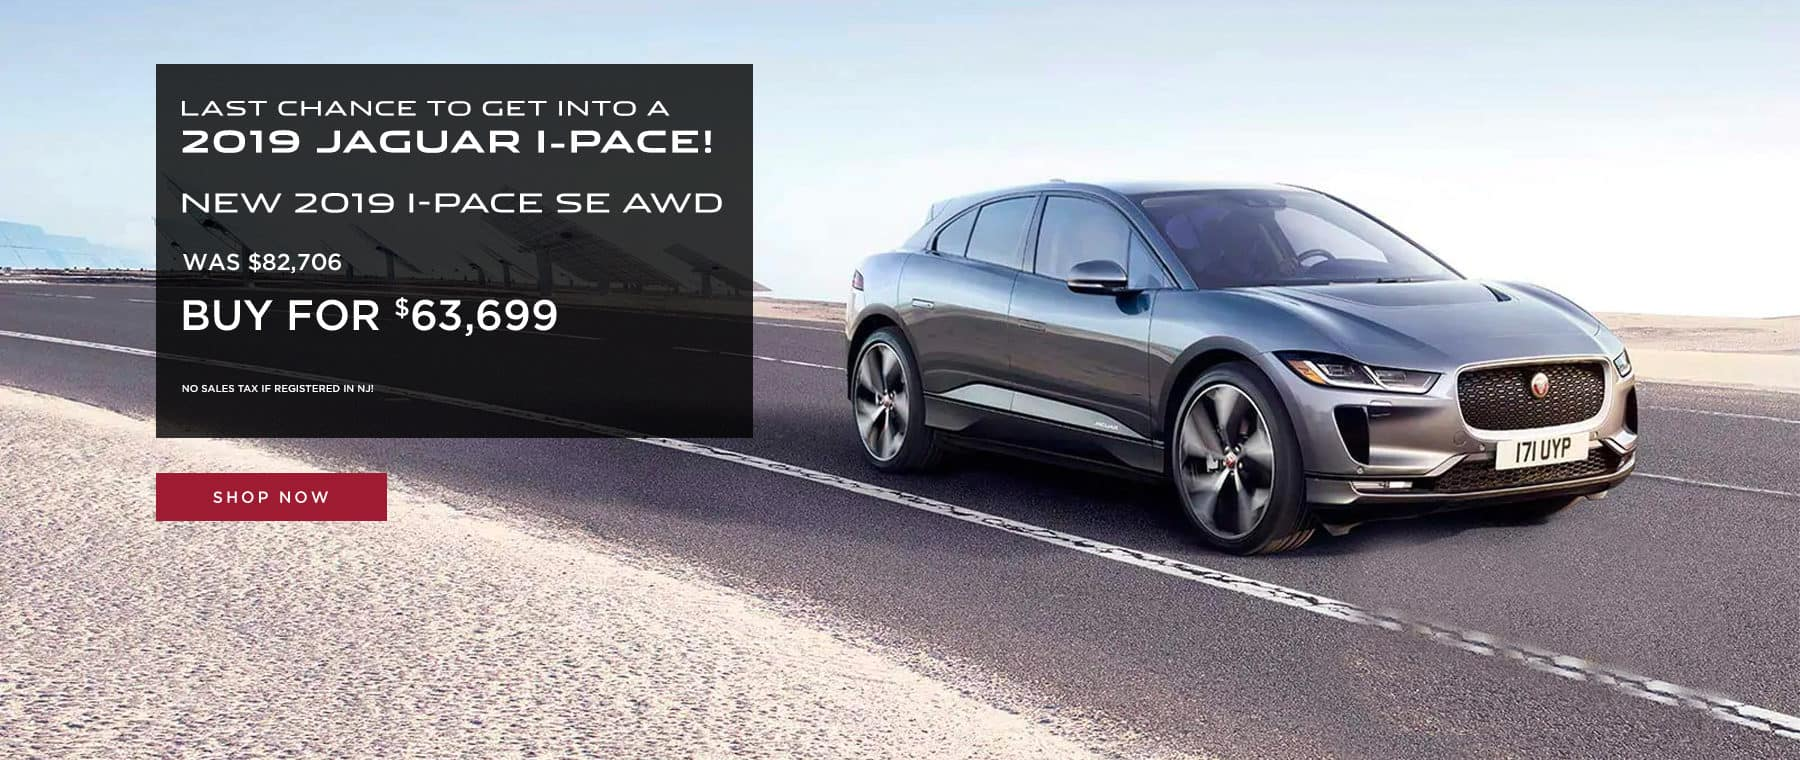 2019 IPACE